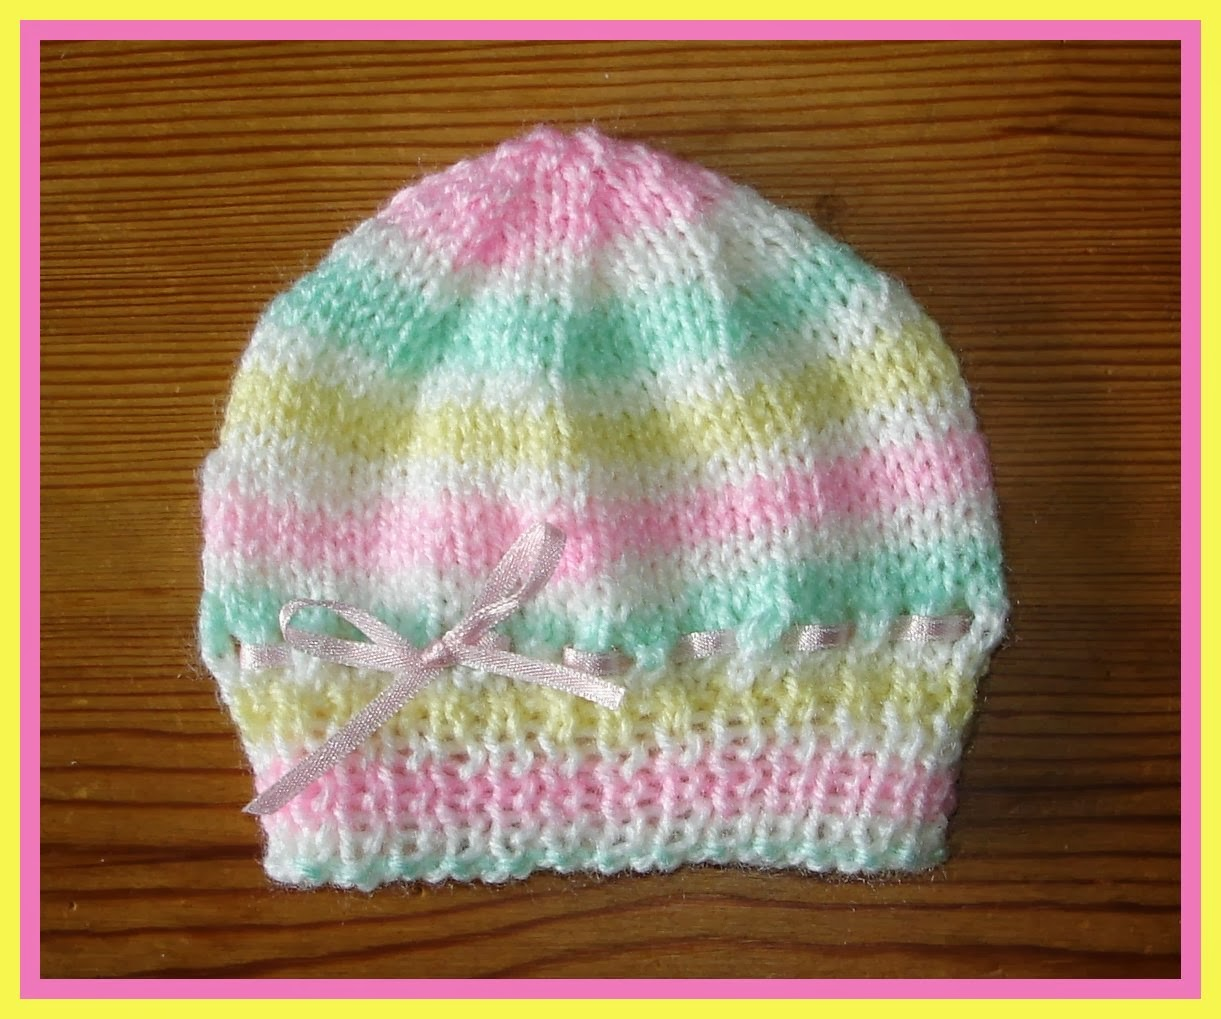 mariannas lazy daisy days: Candystripe Knitted Baby Hats